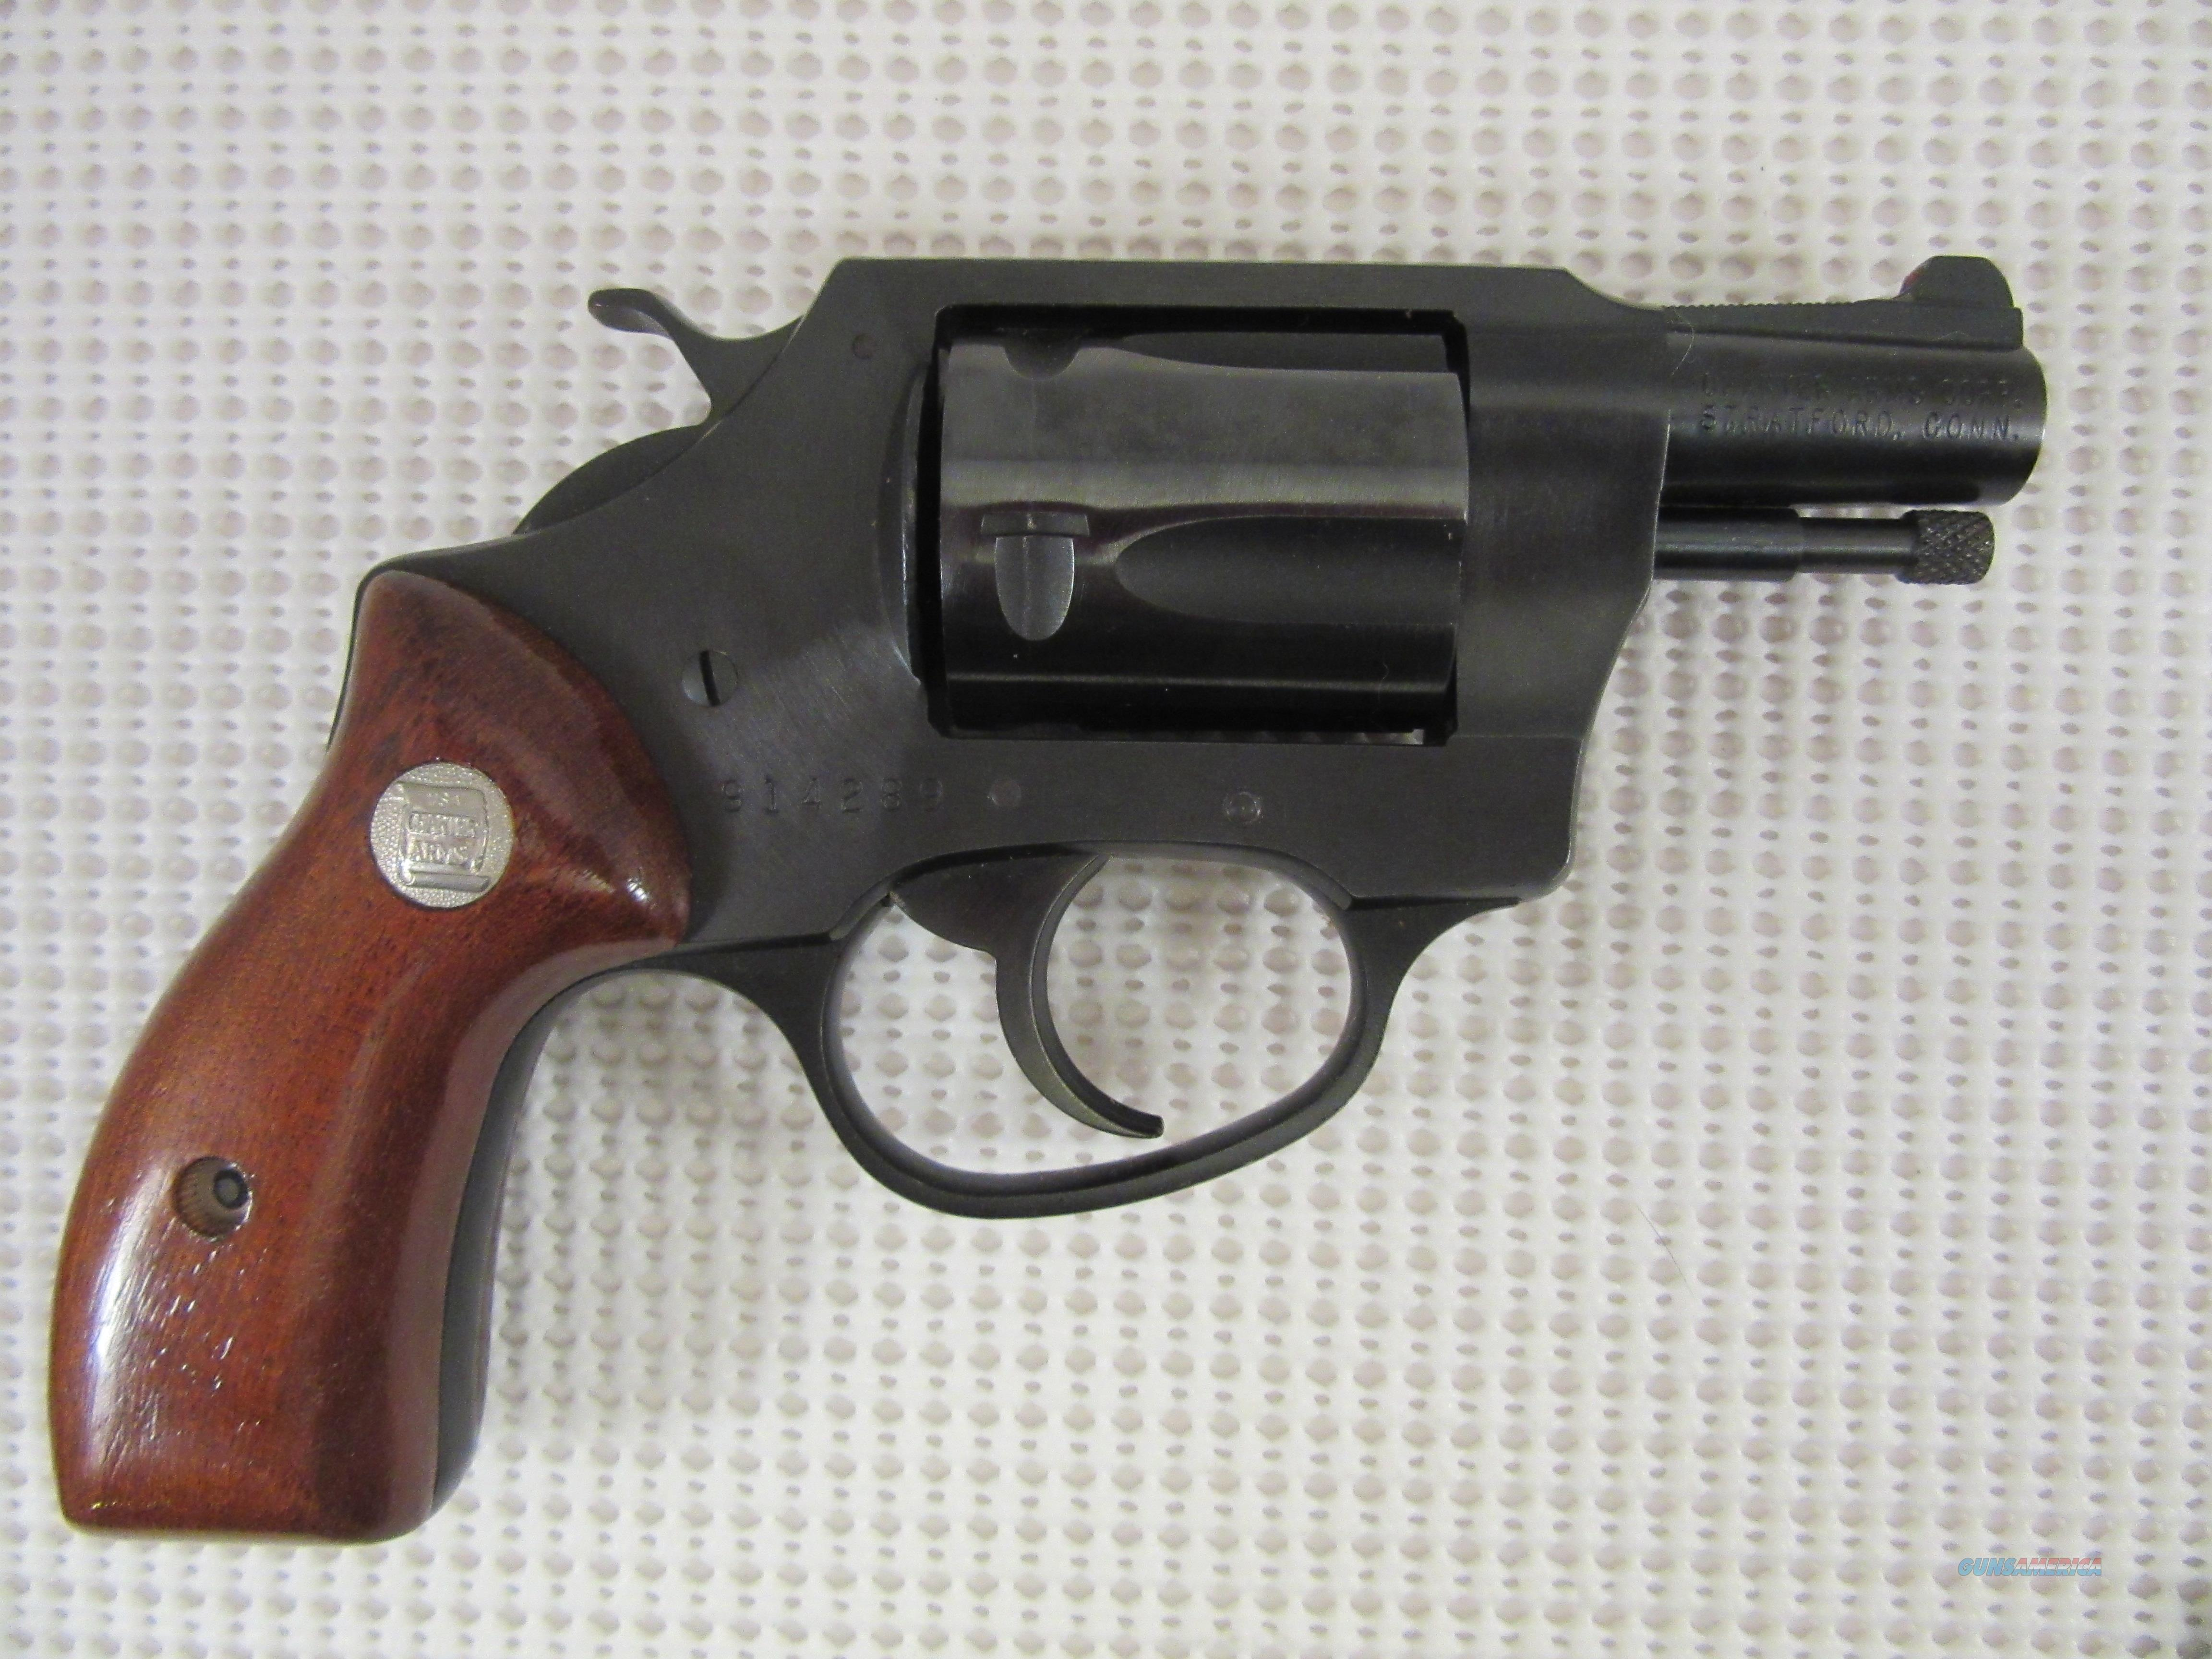 Charter Arms OFF DUTY revolver 38 spl with leather holster  Guns > Pistols > Charter Arms Revolvers